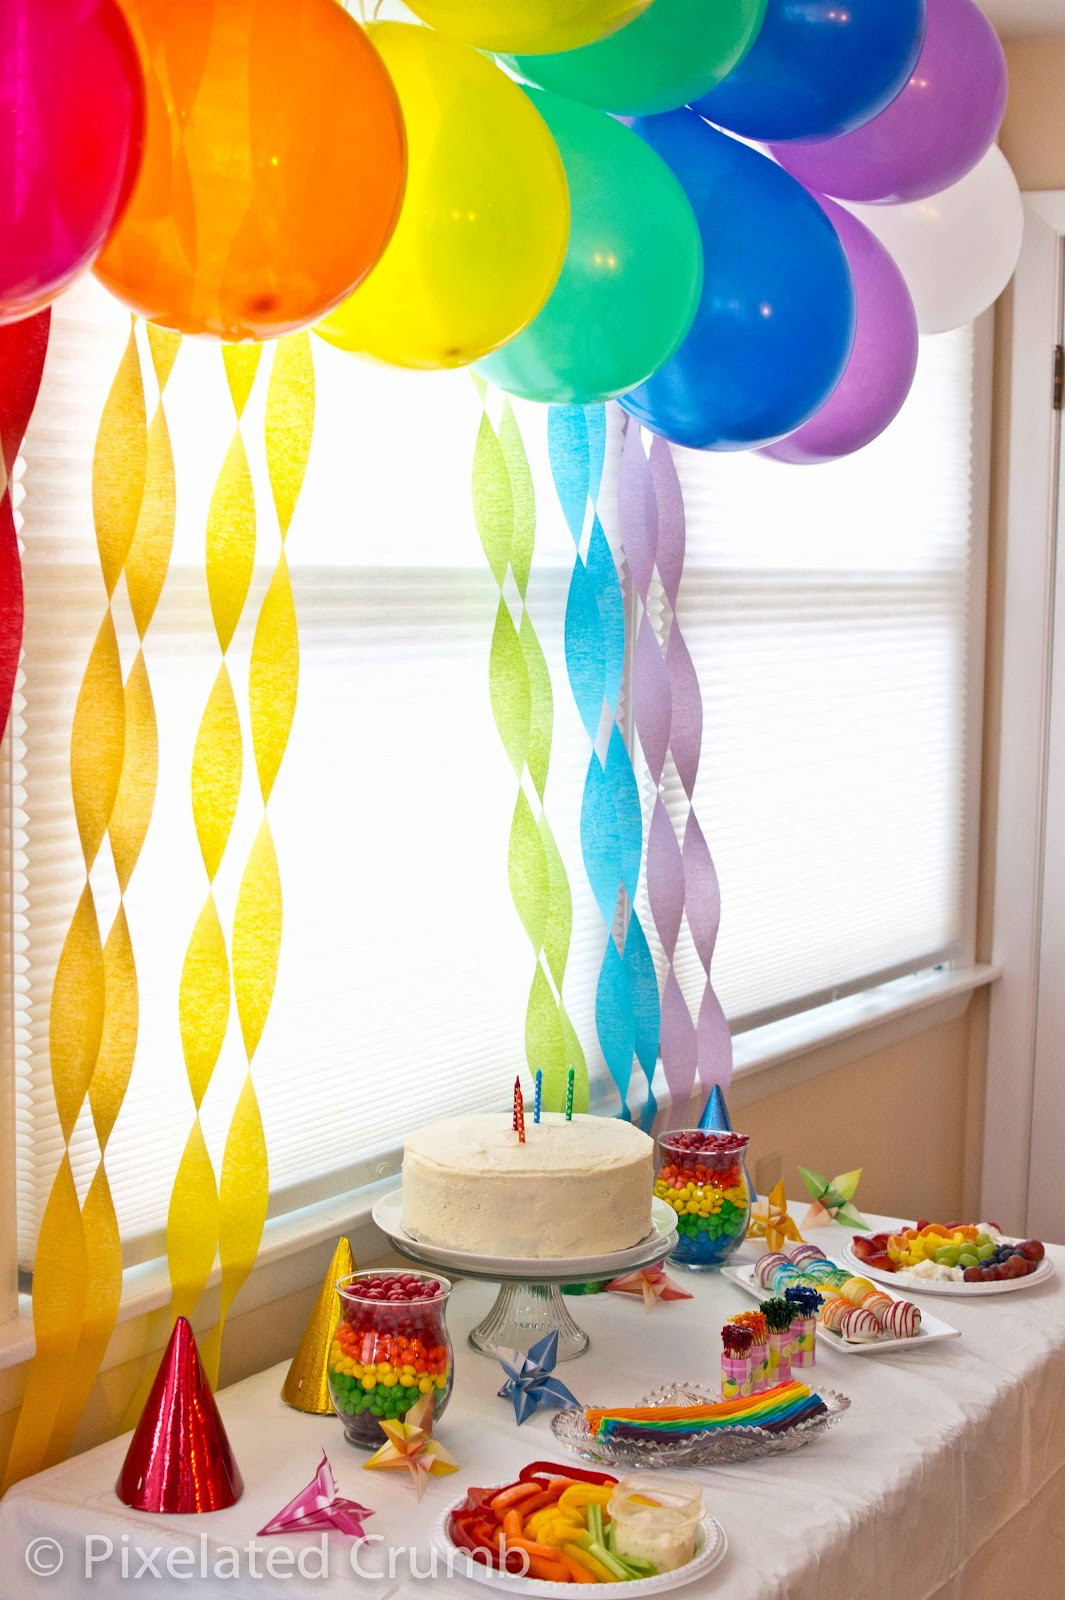 Best ideas about Rainbow Birthday Decorations . Save or Pin Creative Food Rainbow Party Now.